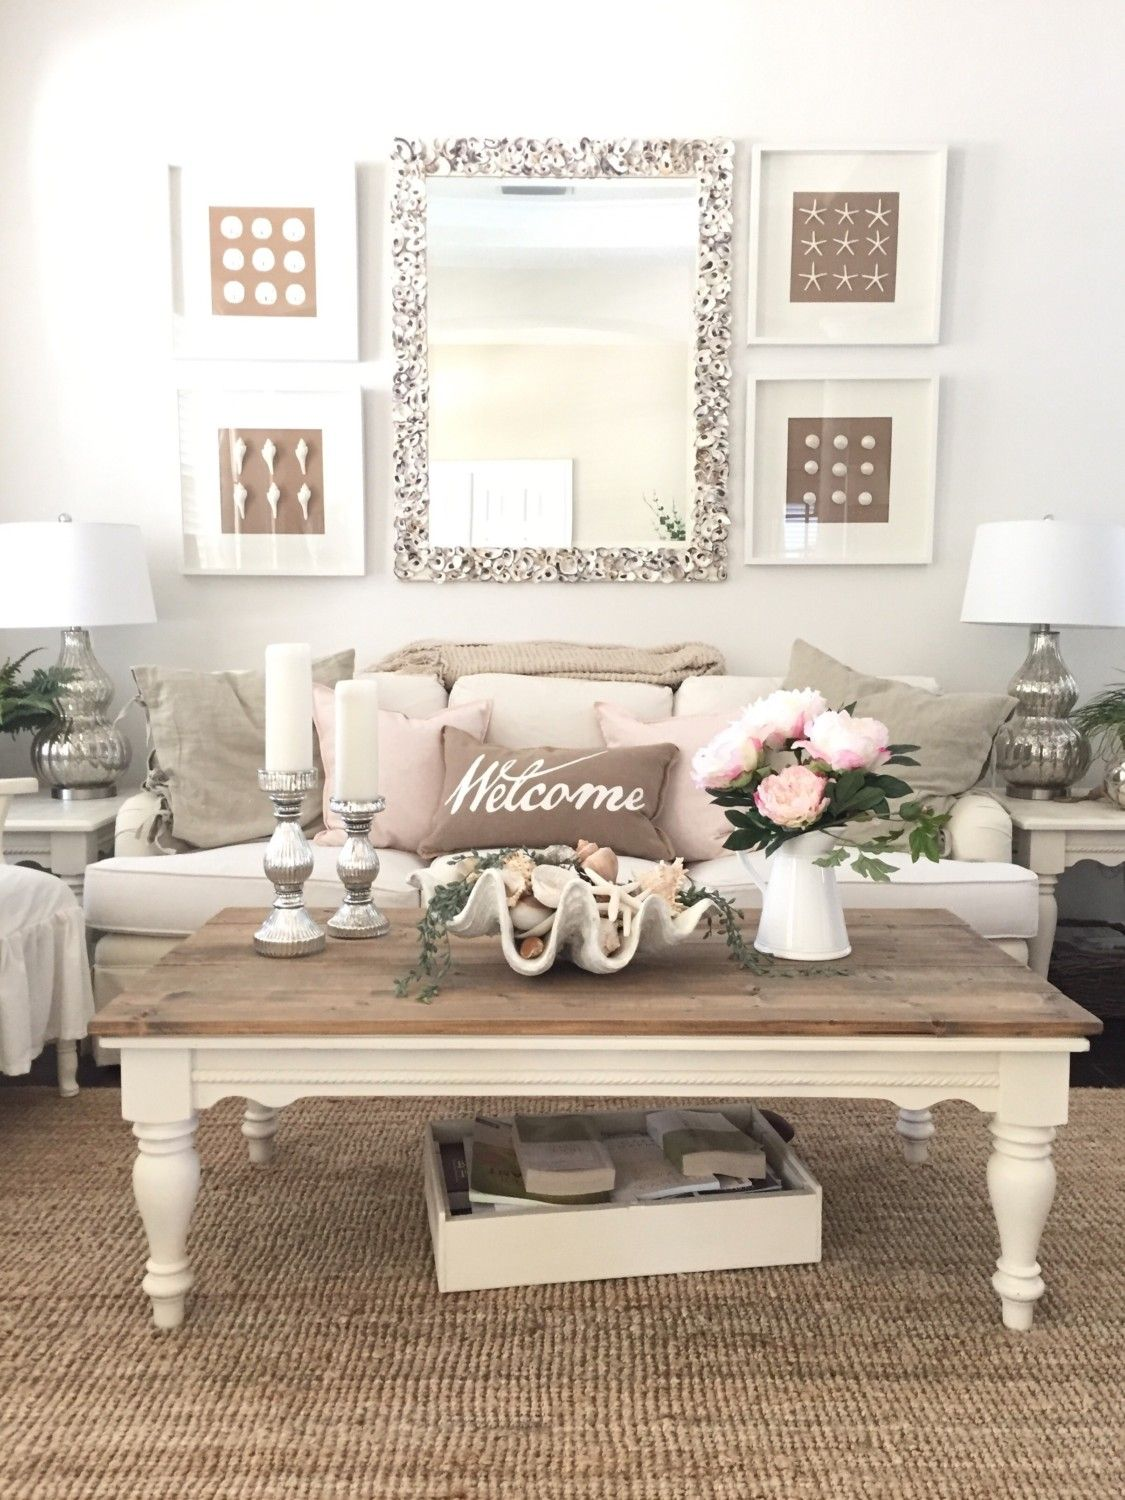 Blush Pink for the Cottage February | to make a home | Pinterest ...